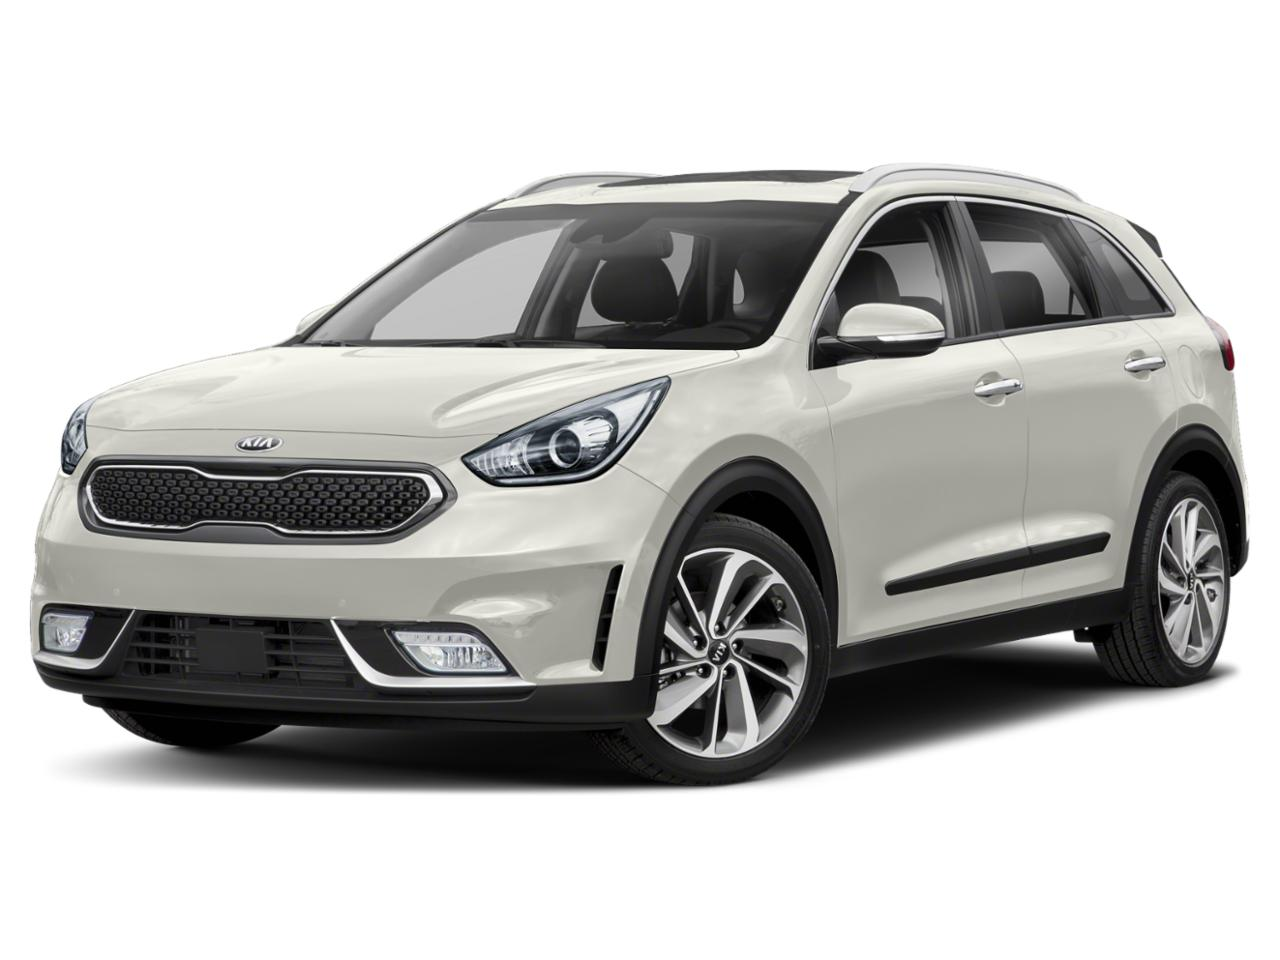 2018 Kia Niro Vehicle Photo in Lincoln, NE 68521